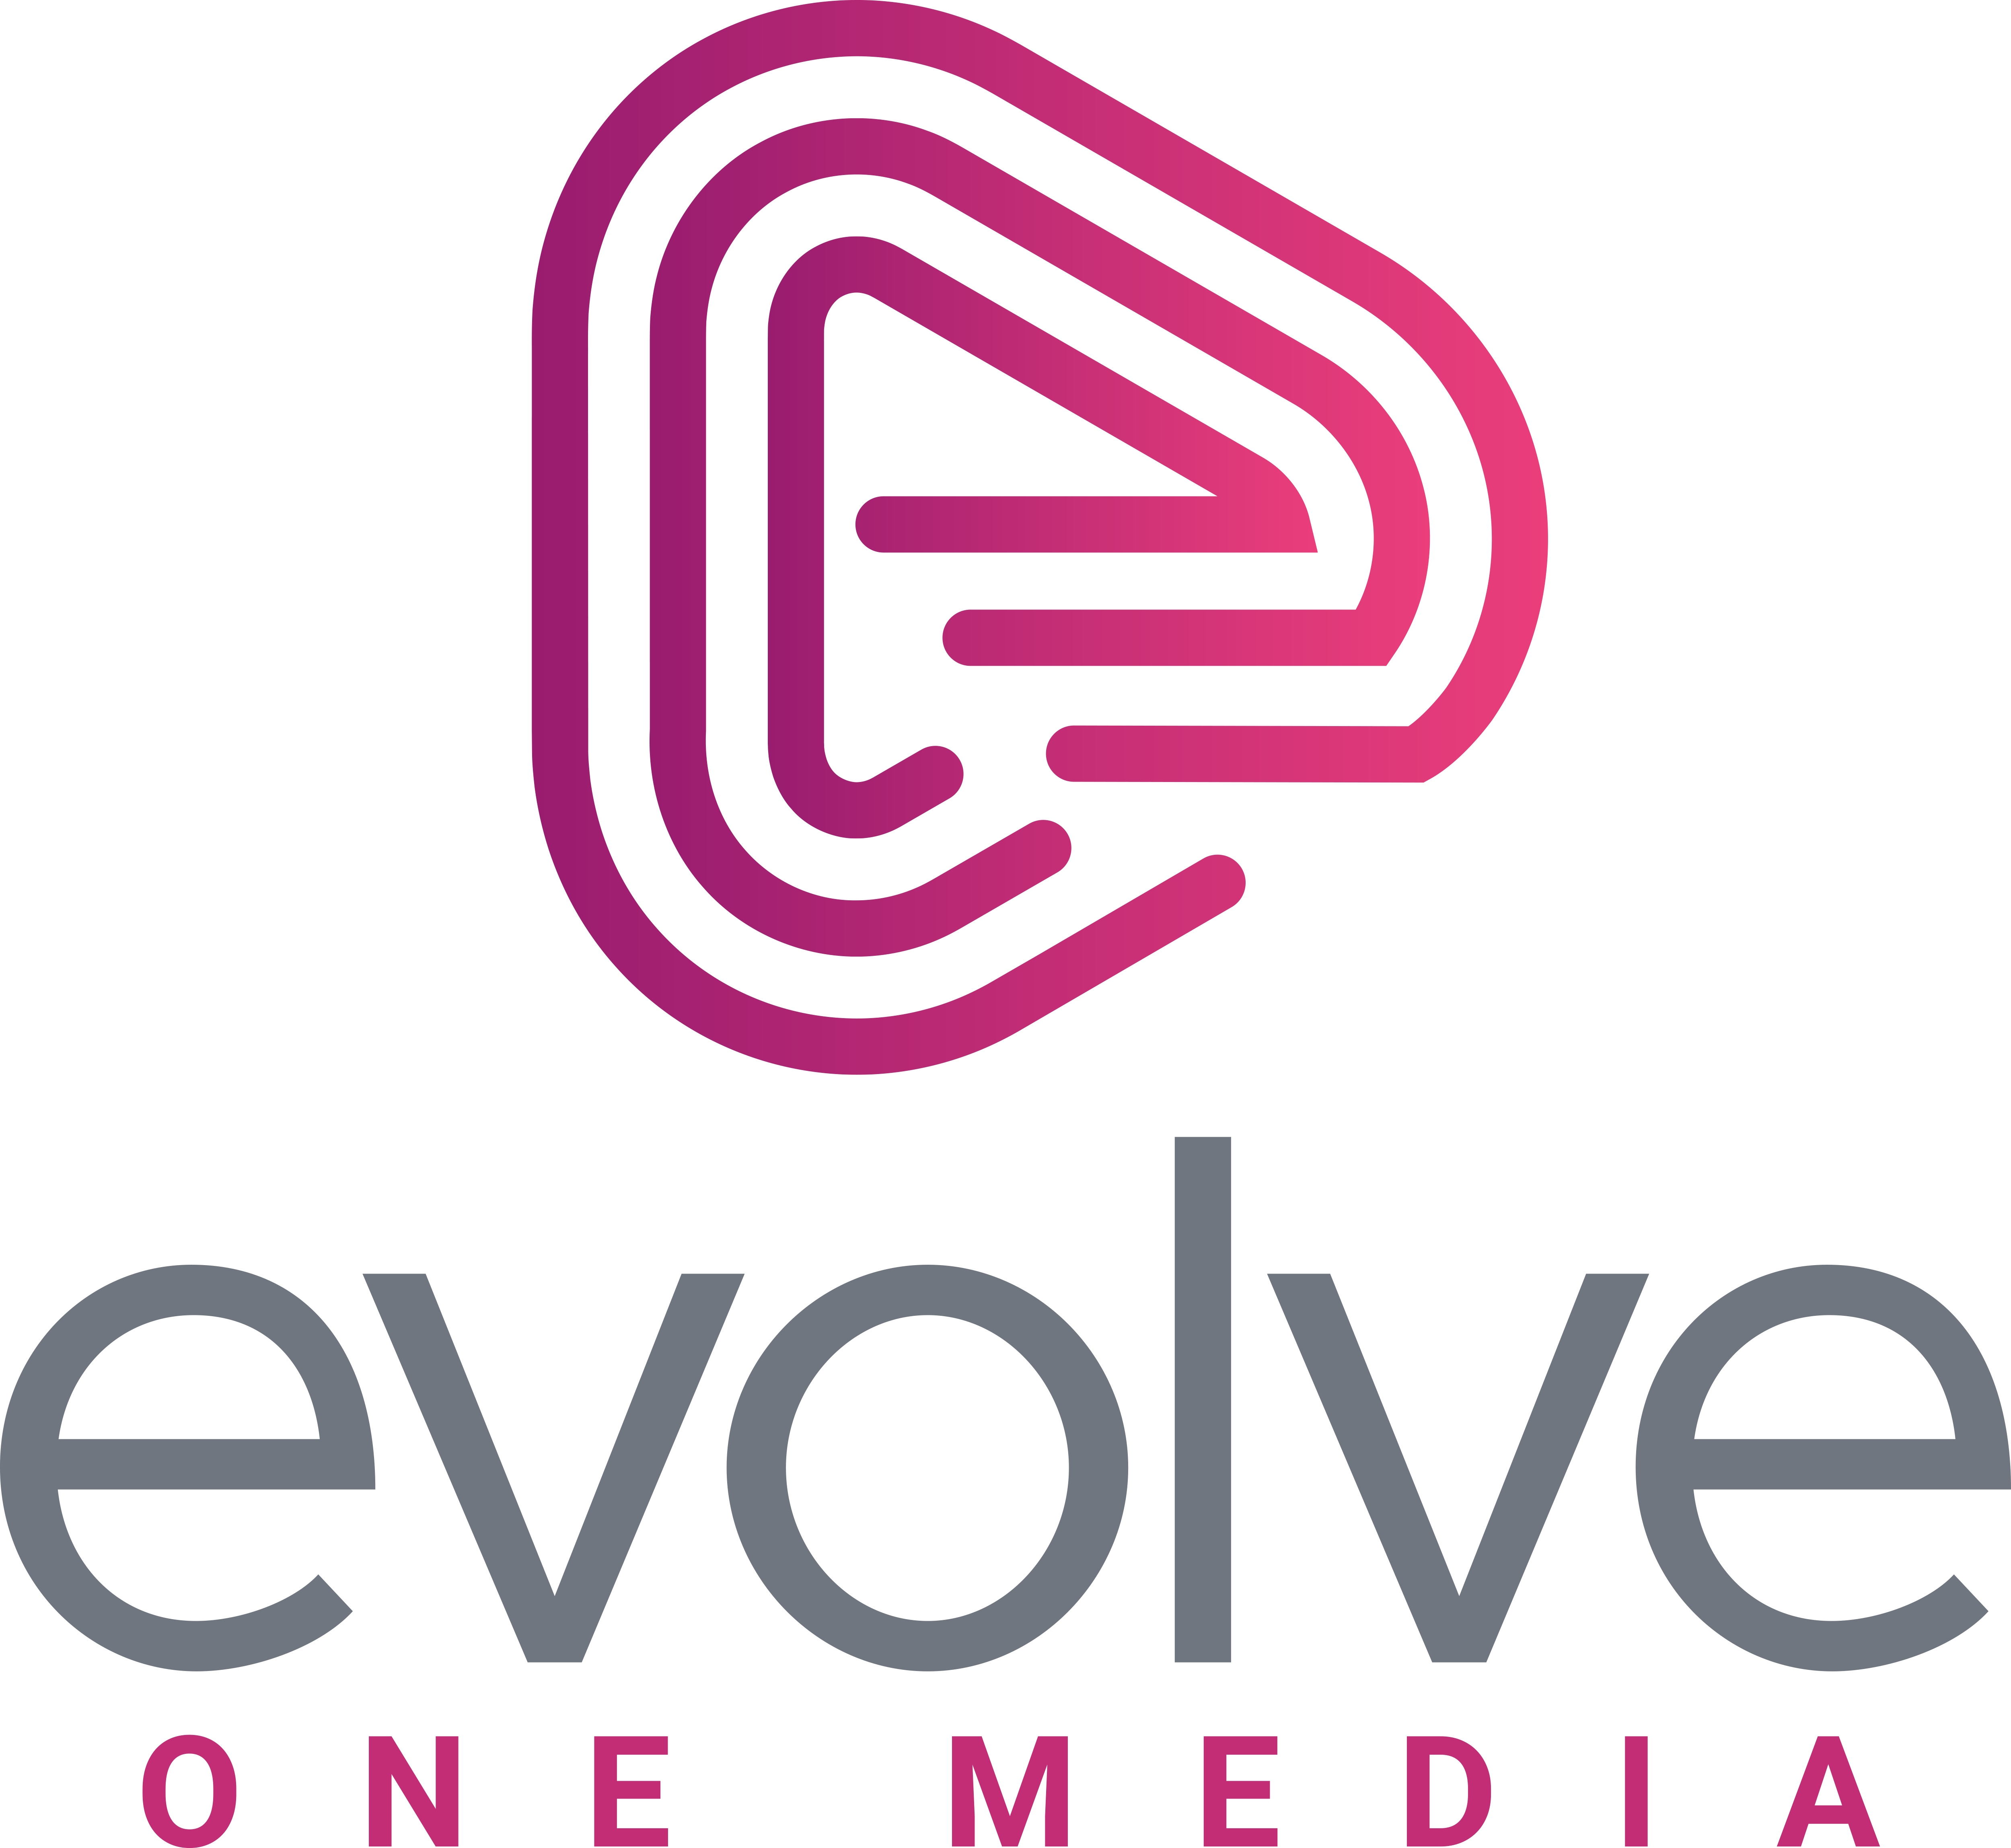 New and progressive consulting agency seeking outstanding logo